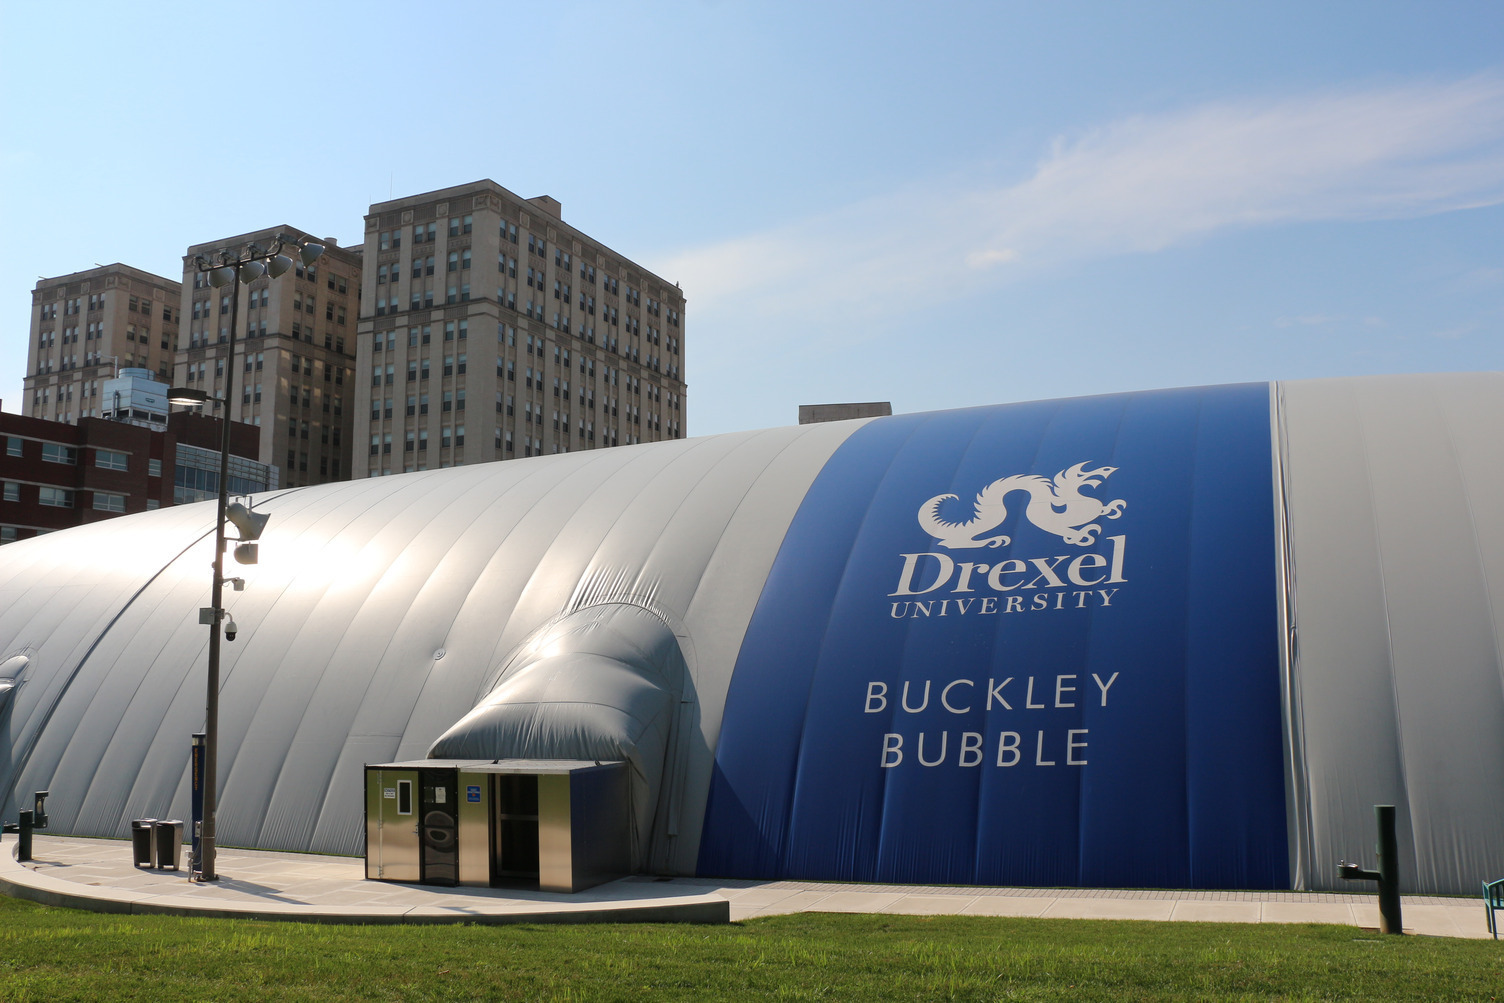 Drexel University installed an air-inflated structure using Tedlar film in the Fall of 2019. Ideal for recreational or athletic field space during the colder season for additional space for athletes to practice.